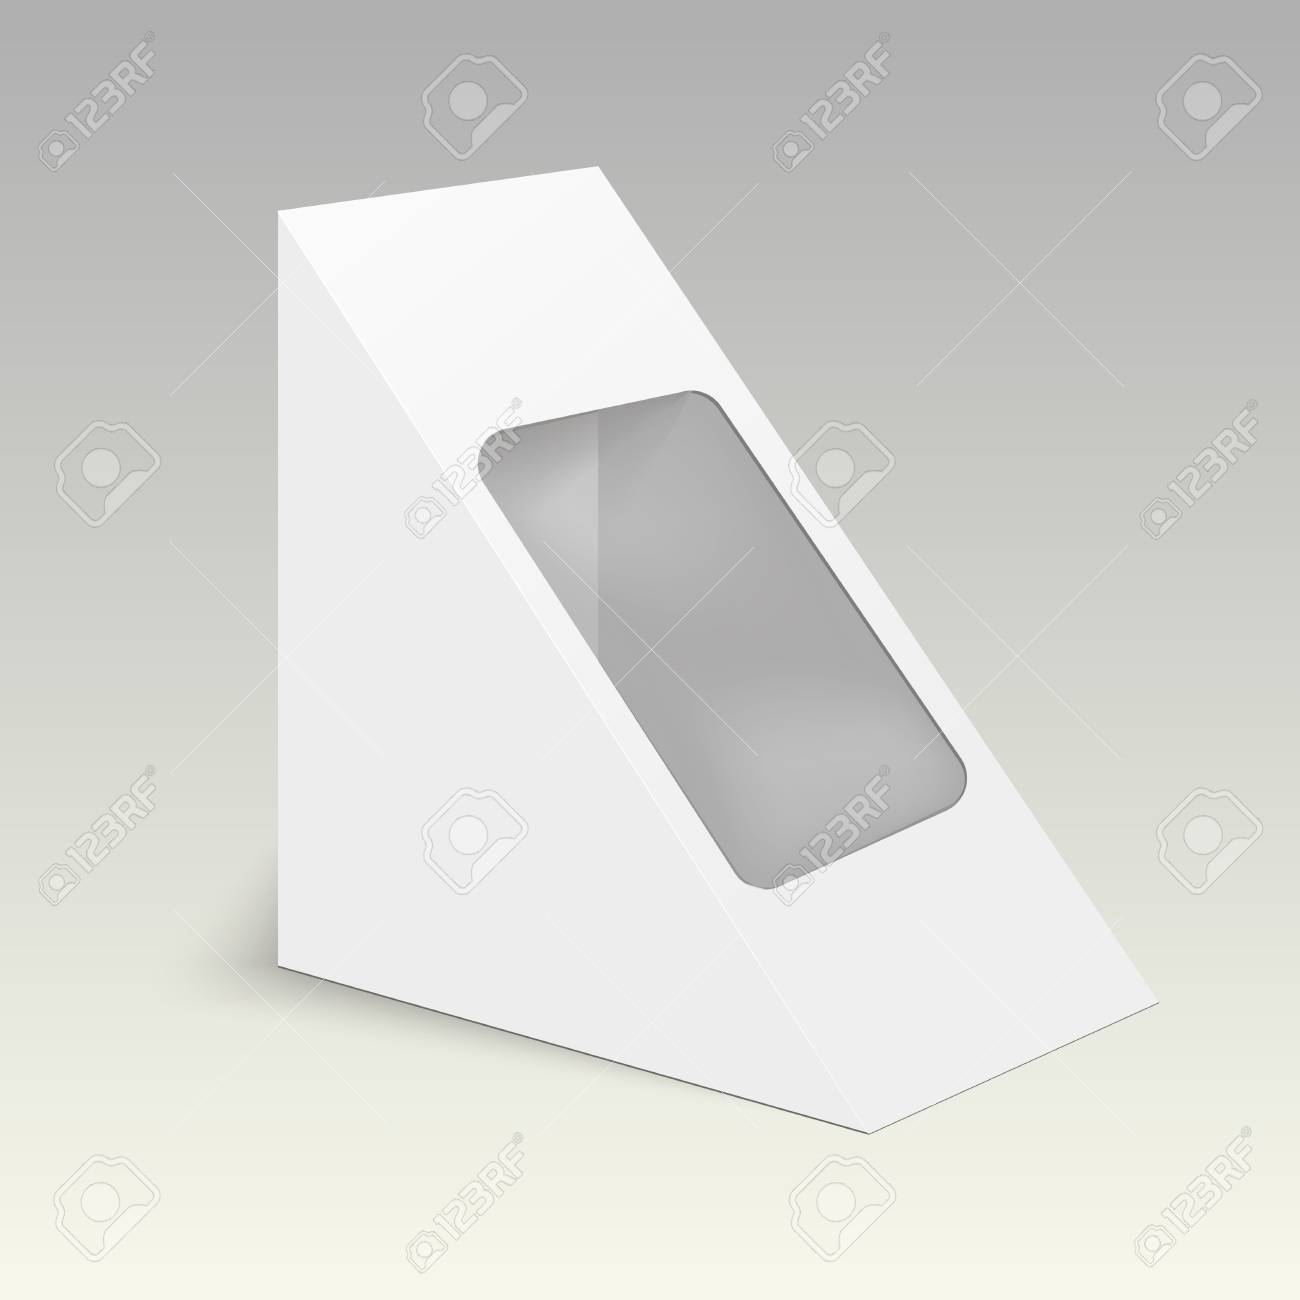 Blank Cardboard Triangle Box Packaging For Food Gift Or Other